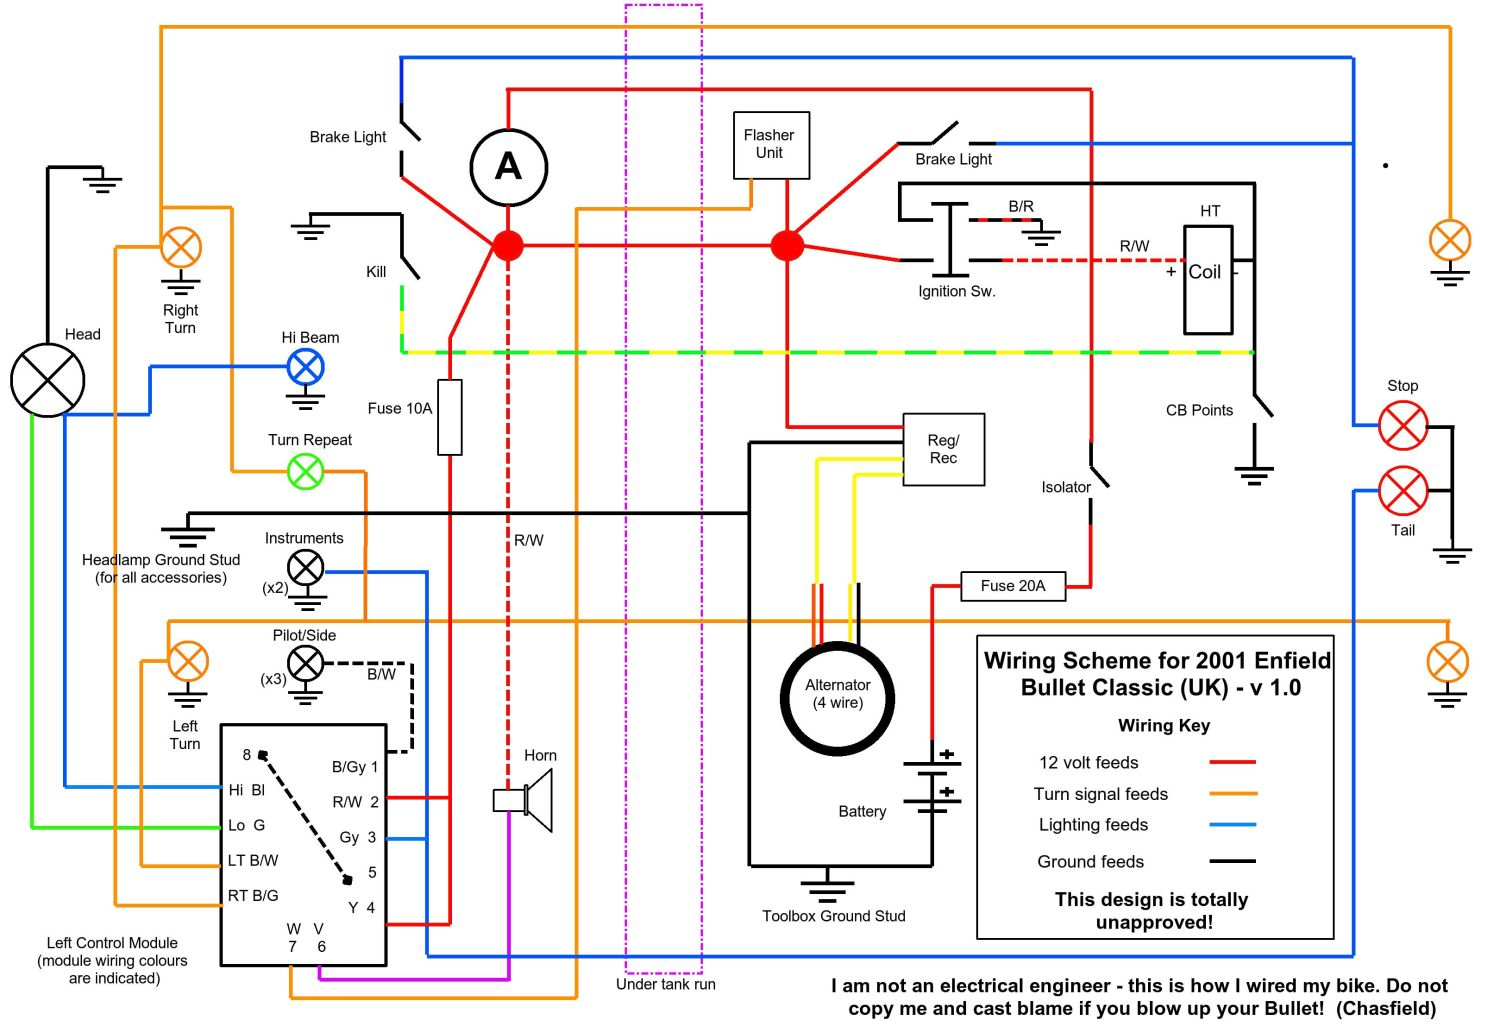 royal enfield bullet wiring diagram Wiring Diagram Collection – Royal Enfield Wiring Diagram